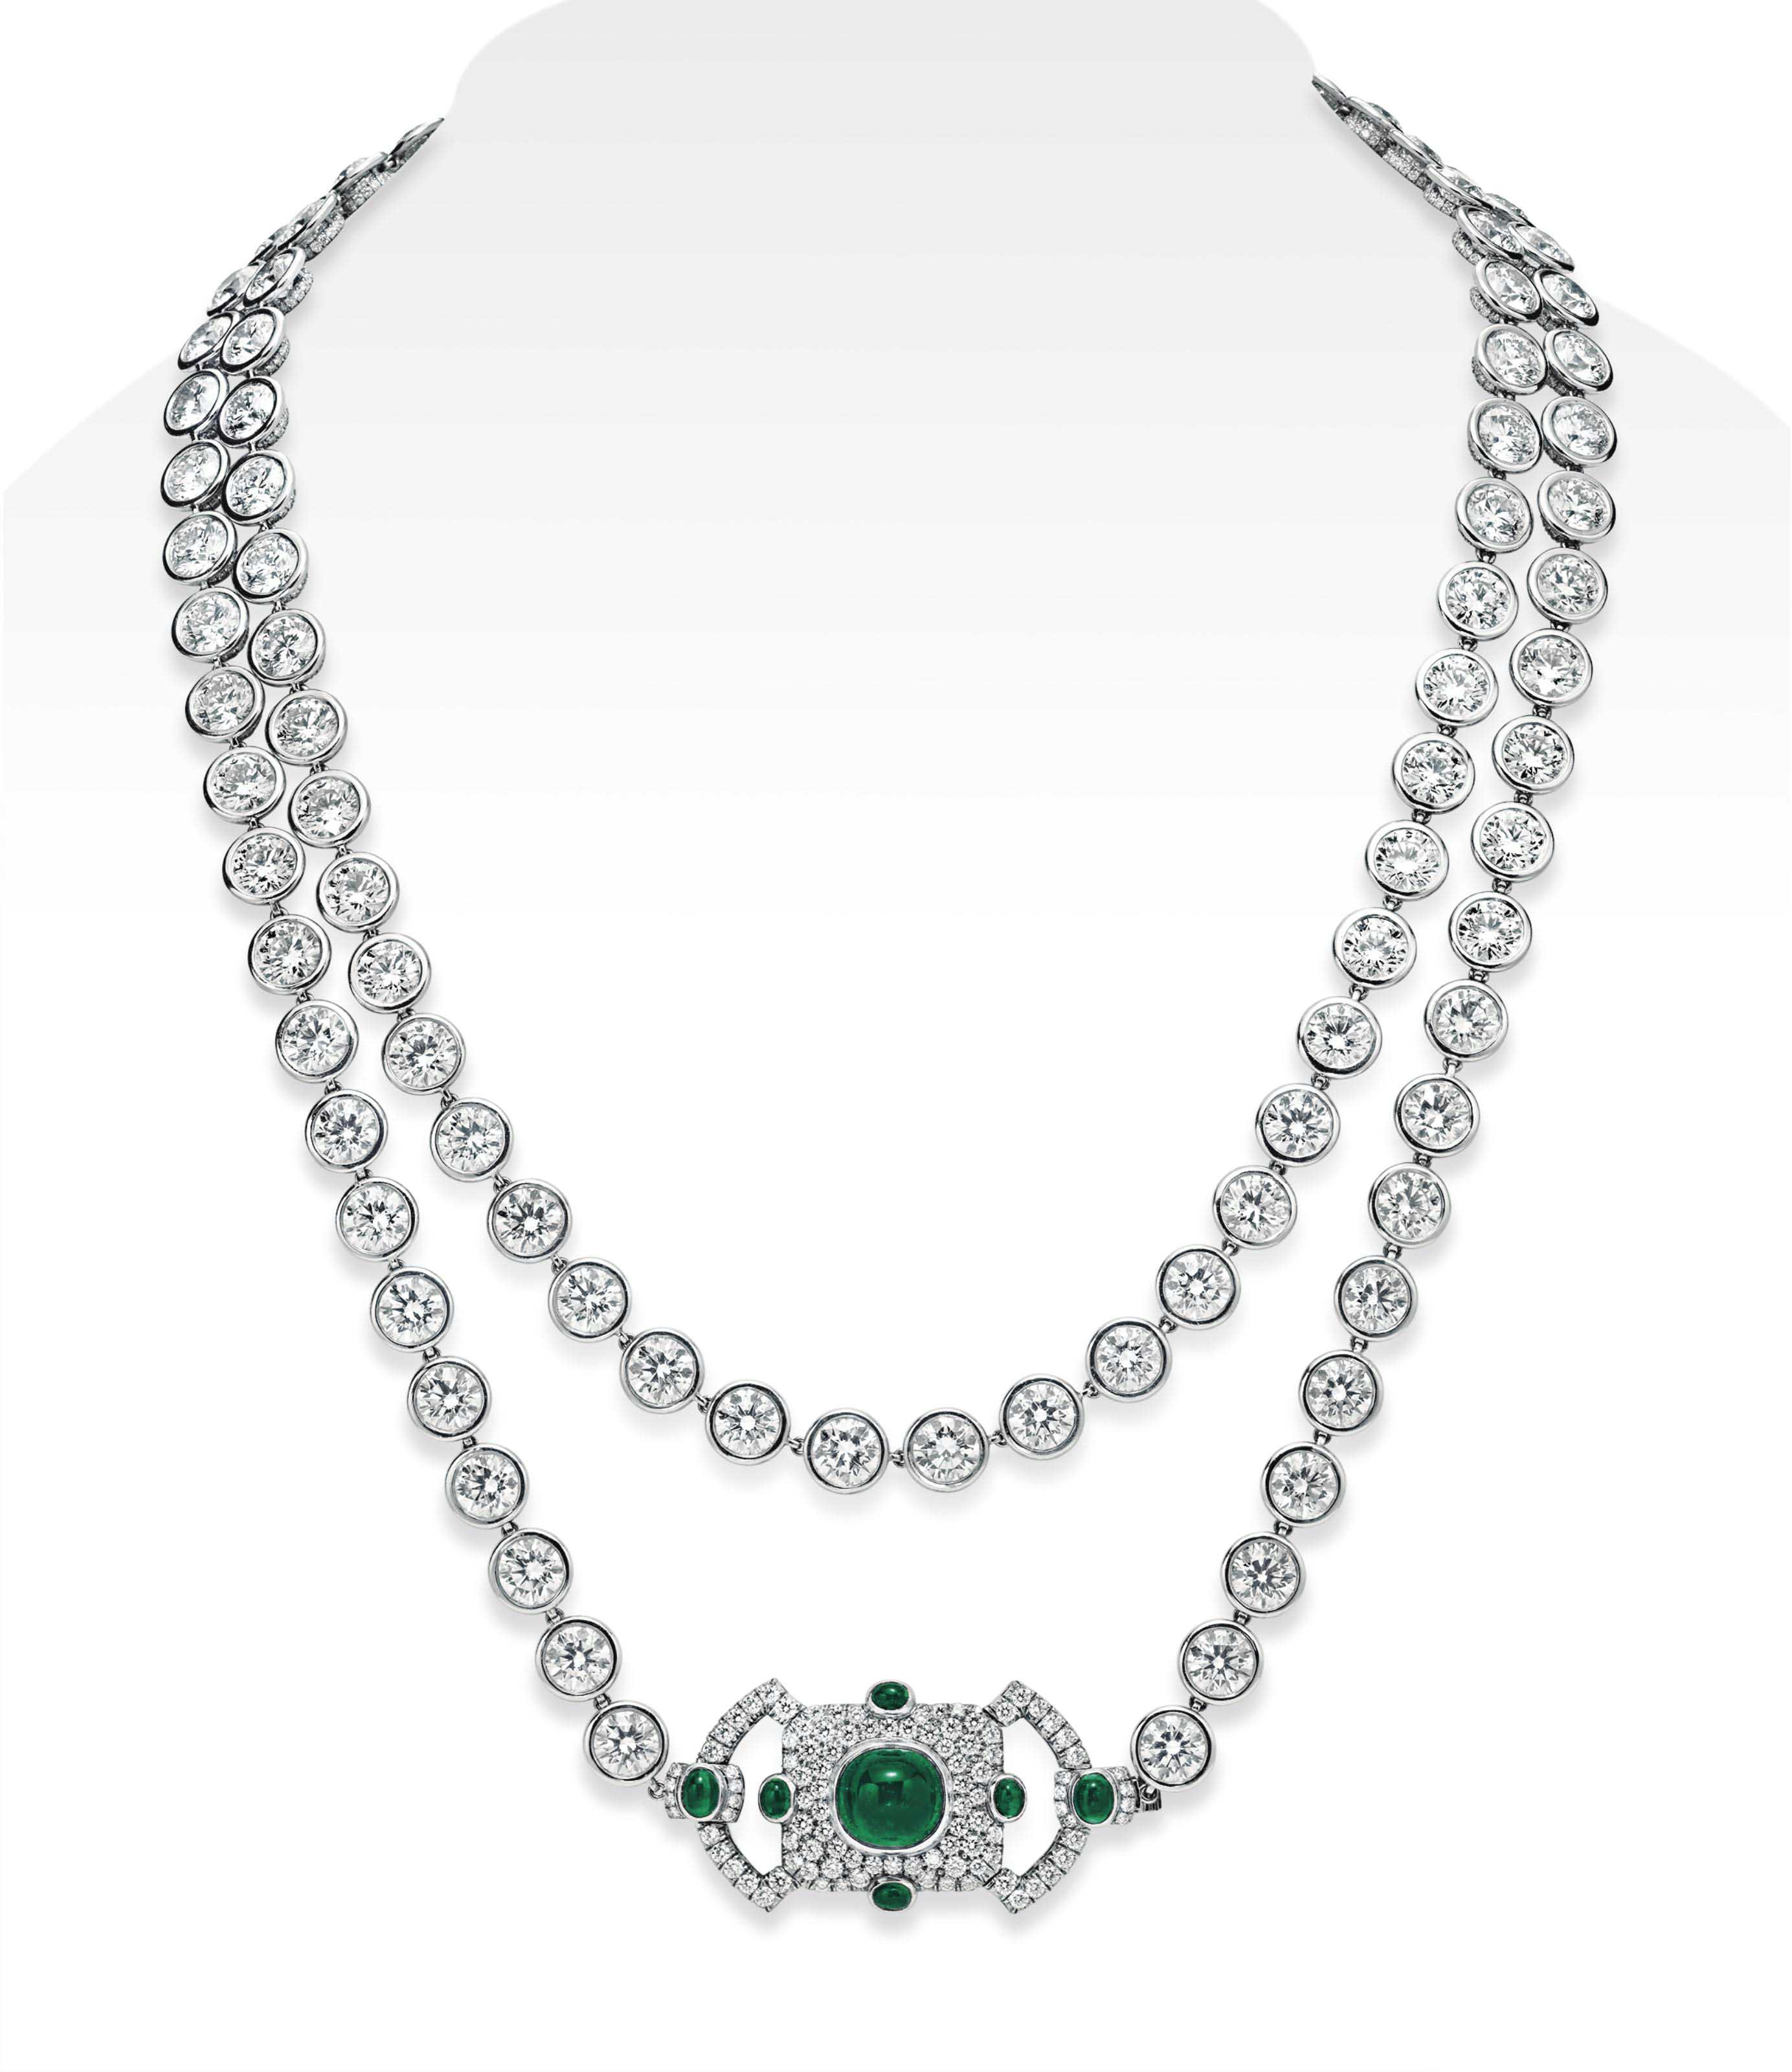 A DIAMOND AND EMERALD LONGCHAIN NECKLACE, BY LEVIEV